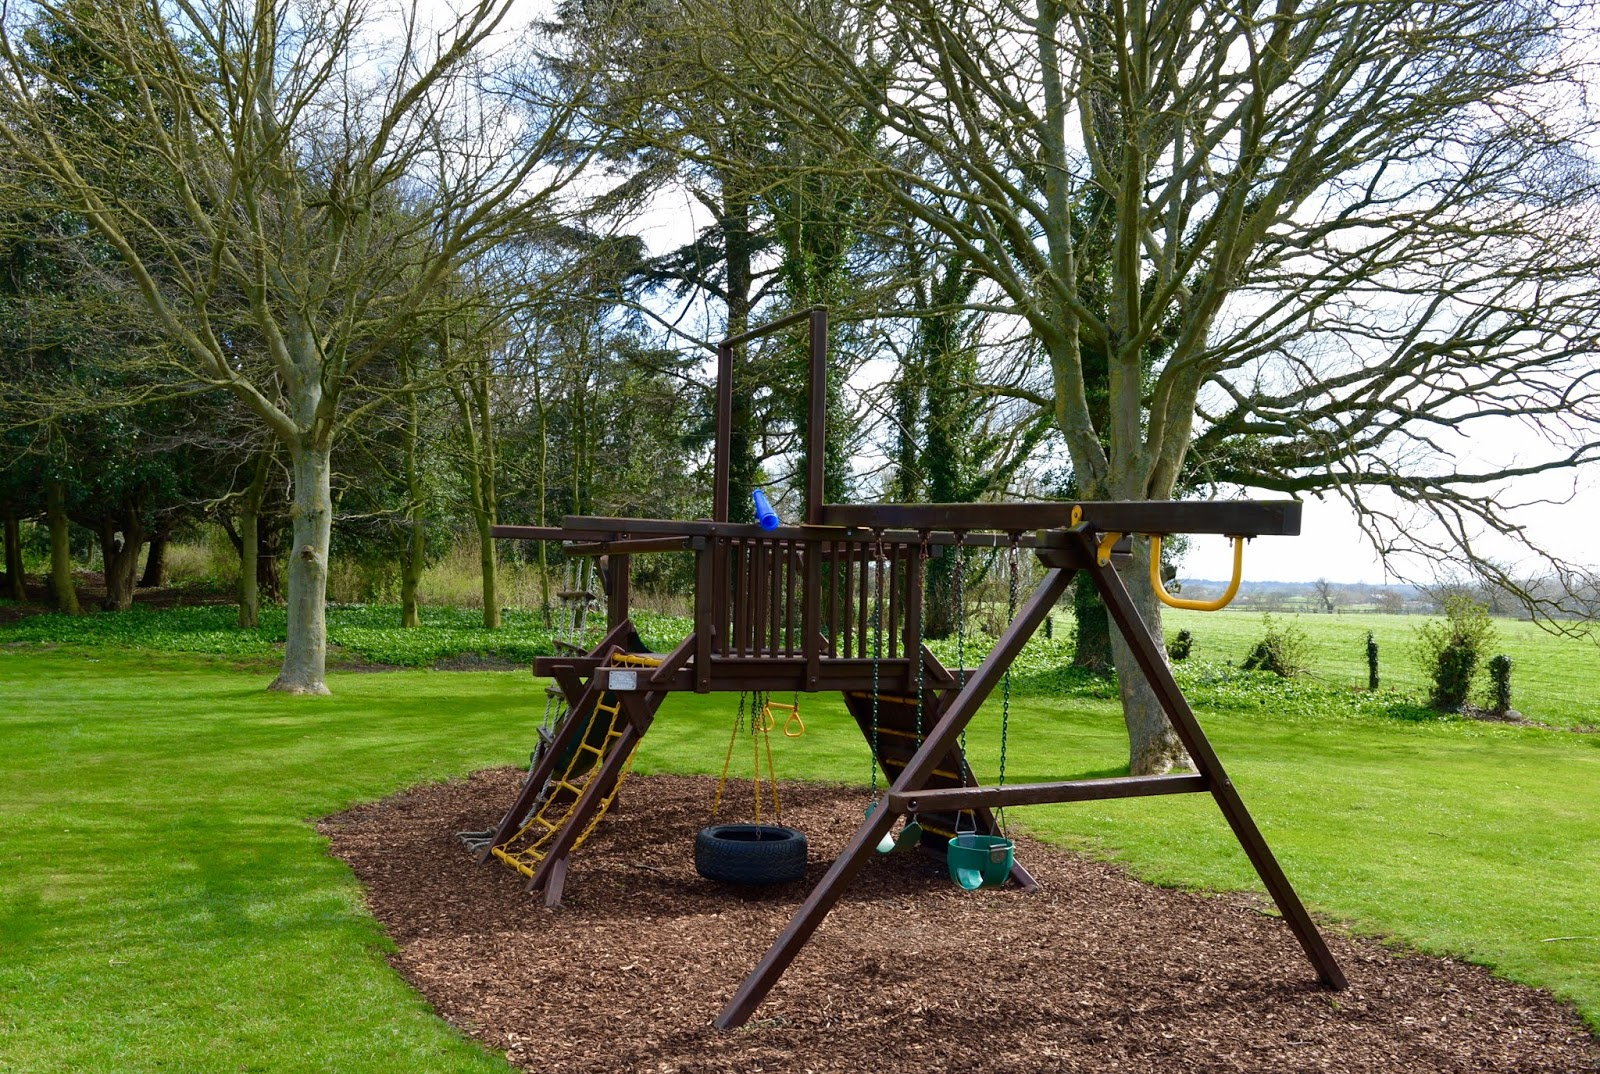 Sunday Lunch, Playgrounds & Birds of Prey at Walworth Castle, Darlington  - park swings and slide